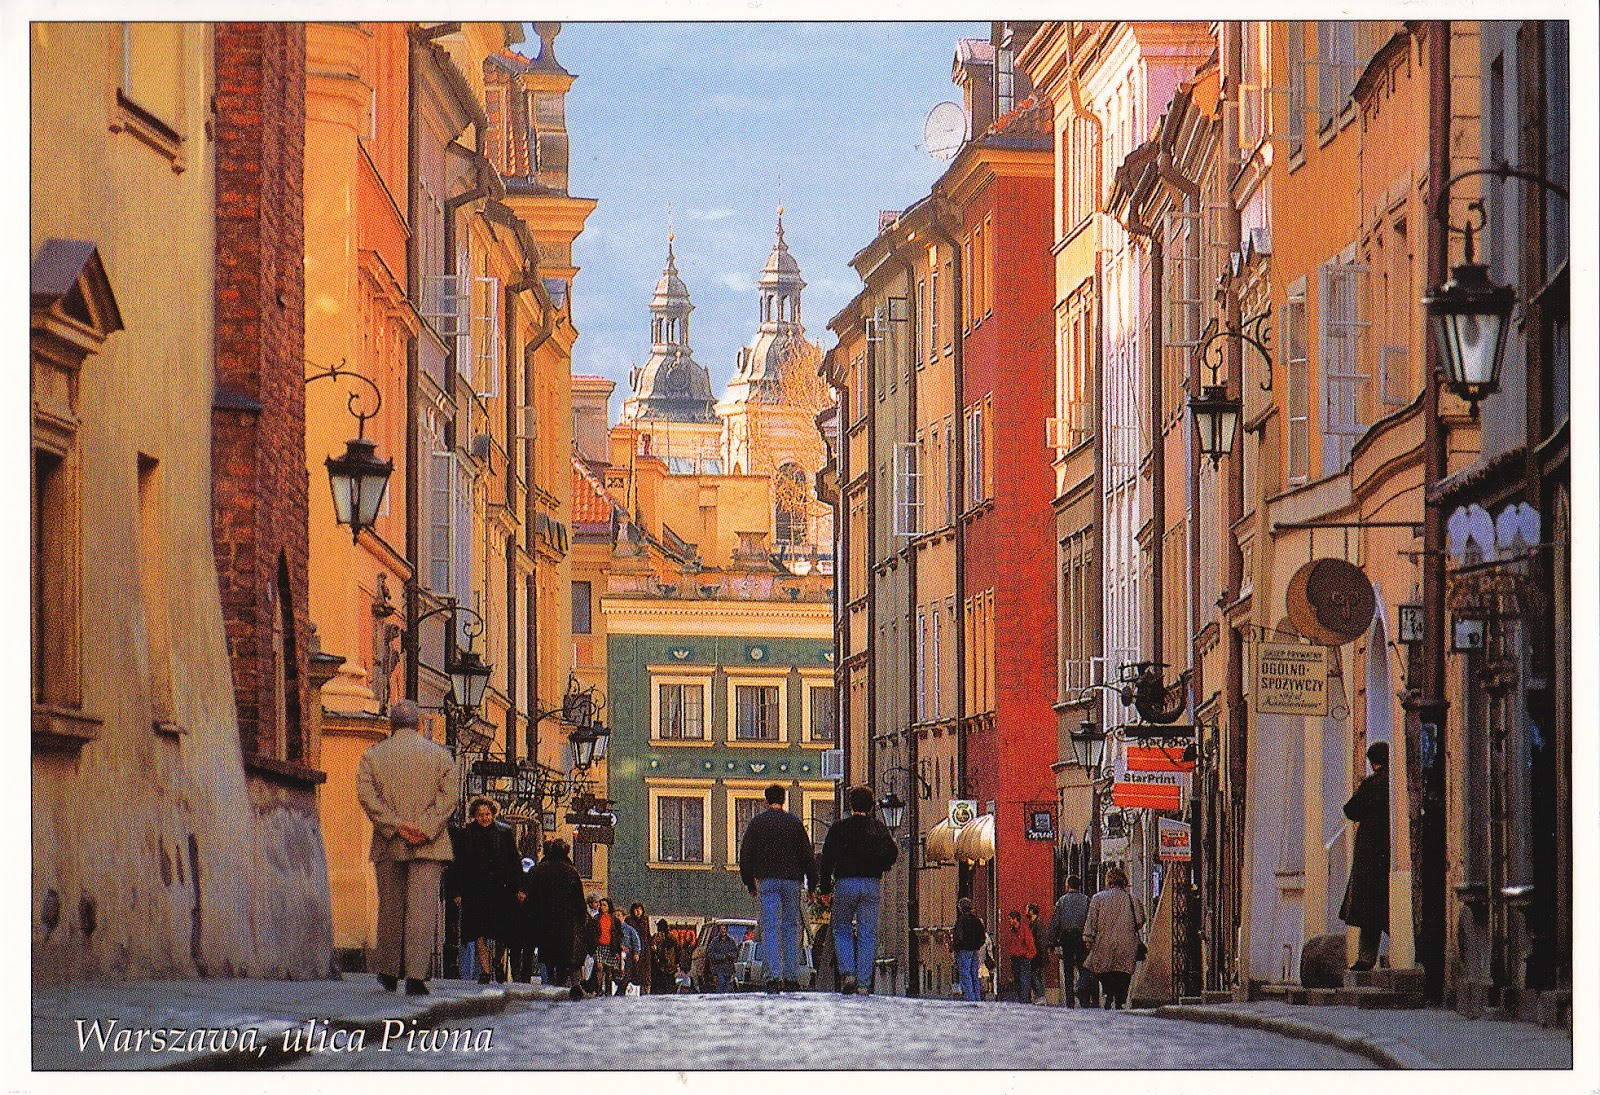 expat dating warsaw The expat arrivals guide to poland offers detailed advice for expats living in or moving to life in the polish capital of warsaw in her interview with expat.